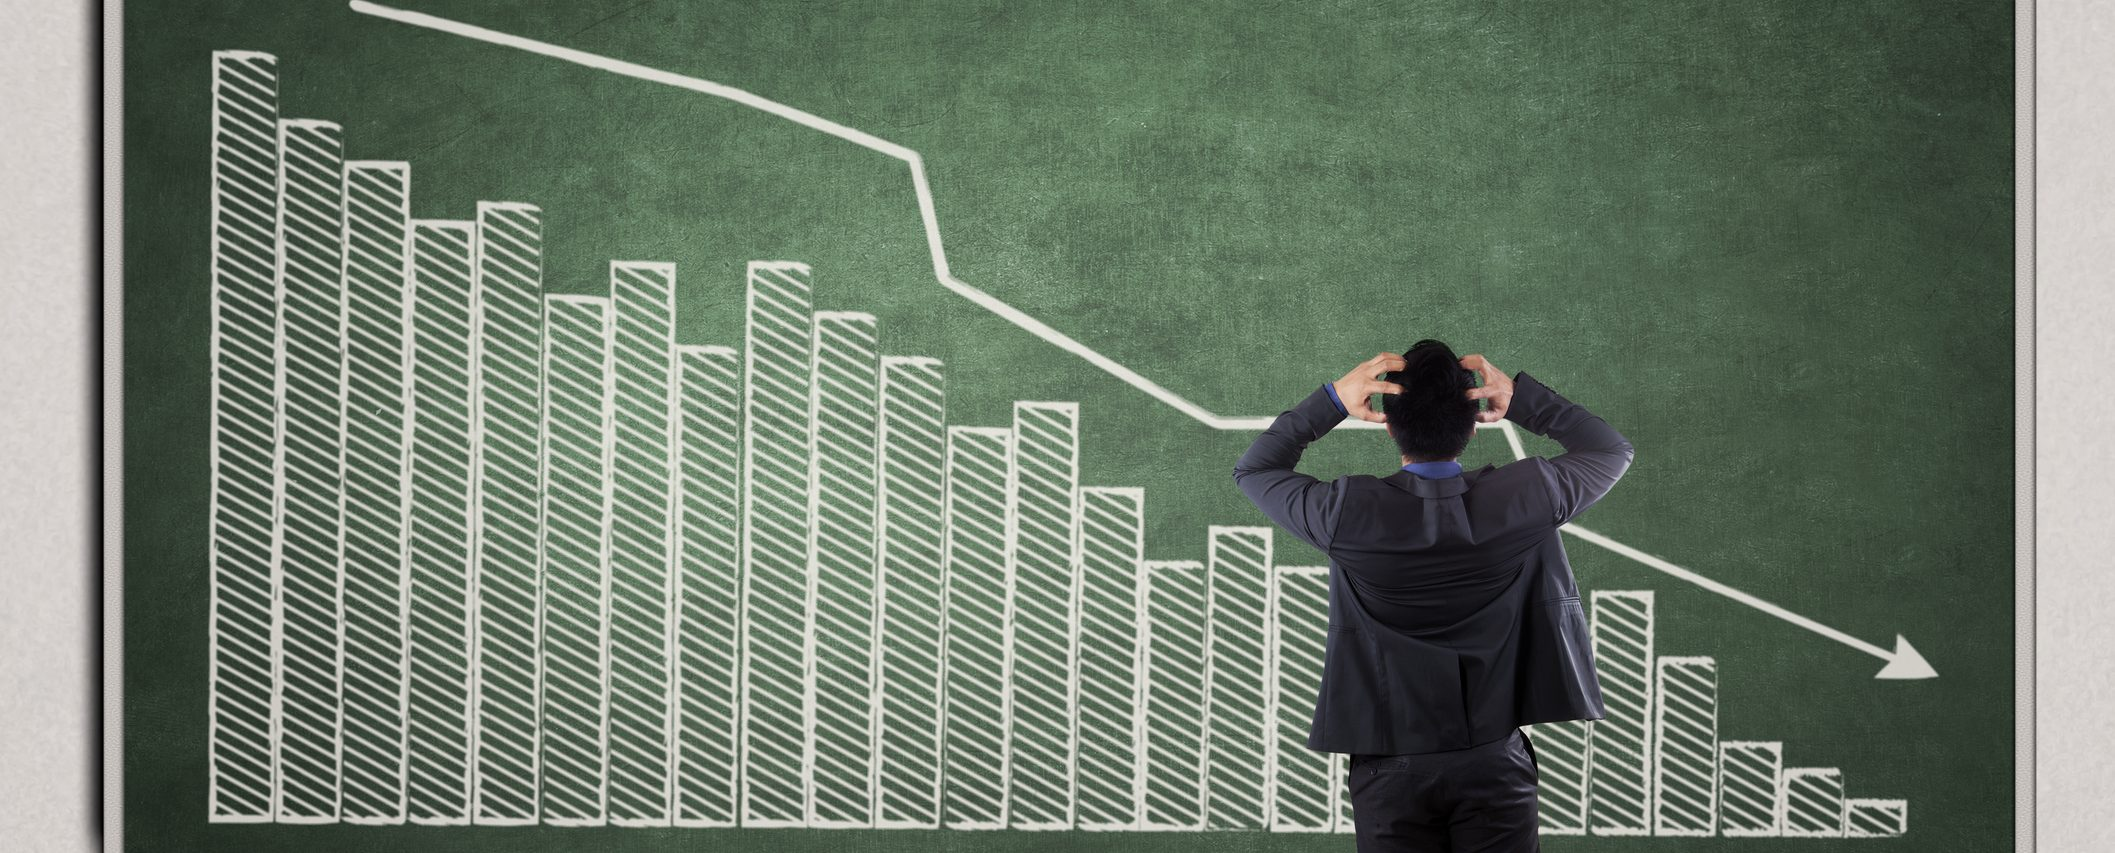 Forget optimistic scenarios and buckle up for a big drop in IT spending this year, says IDC